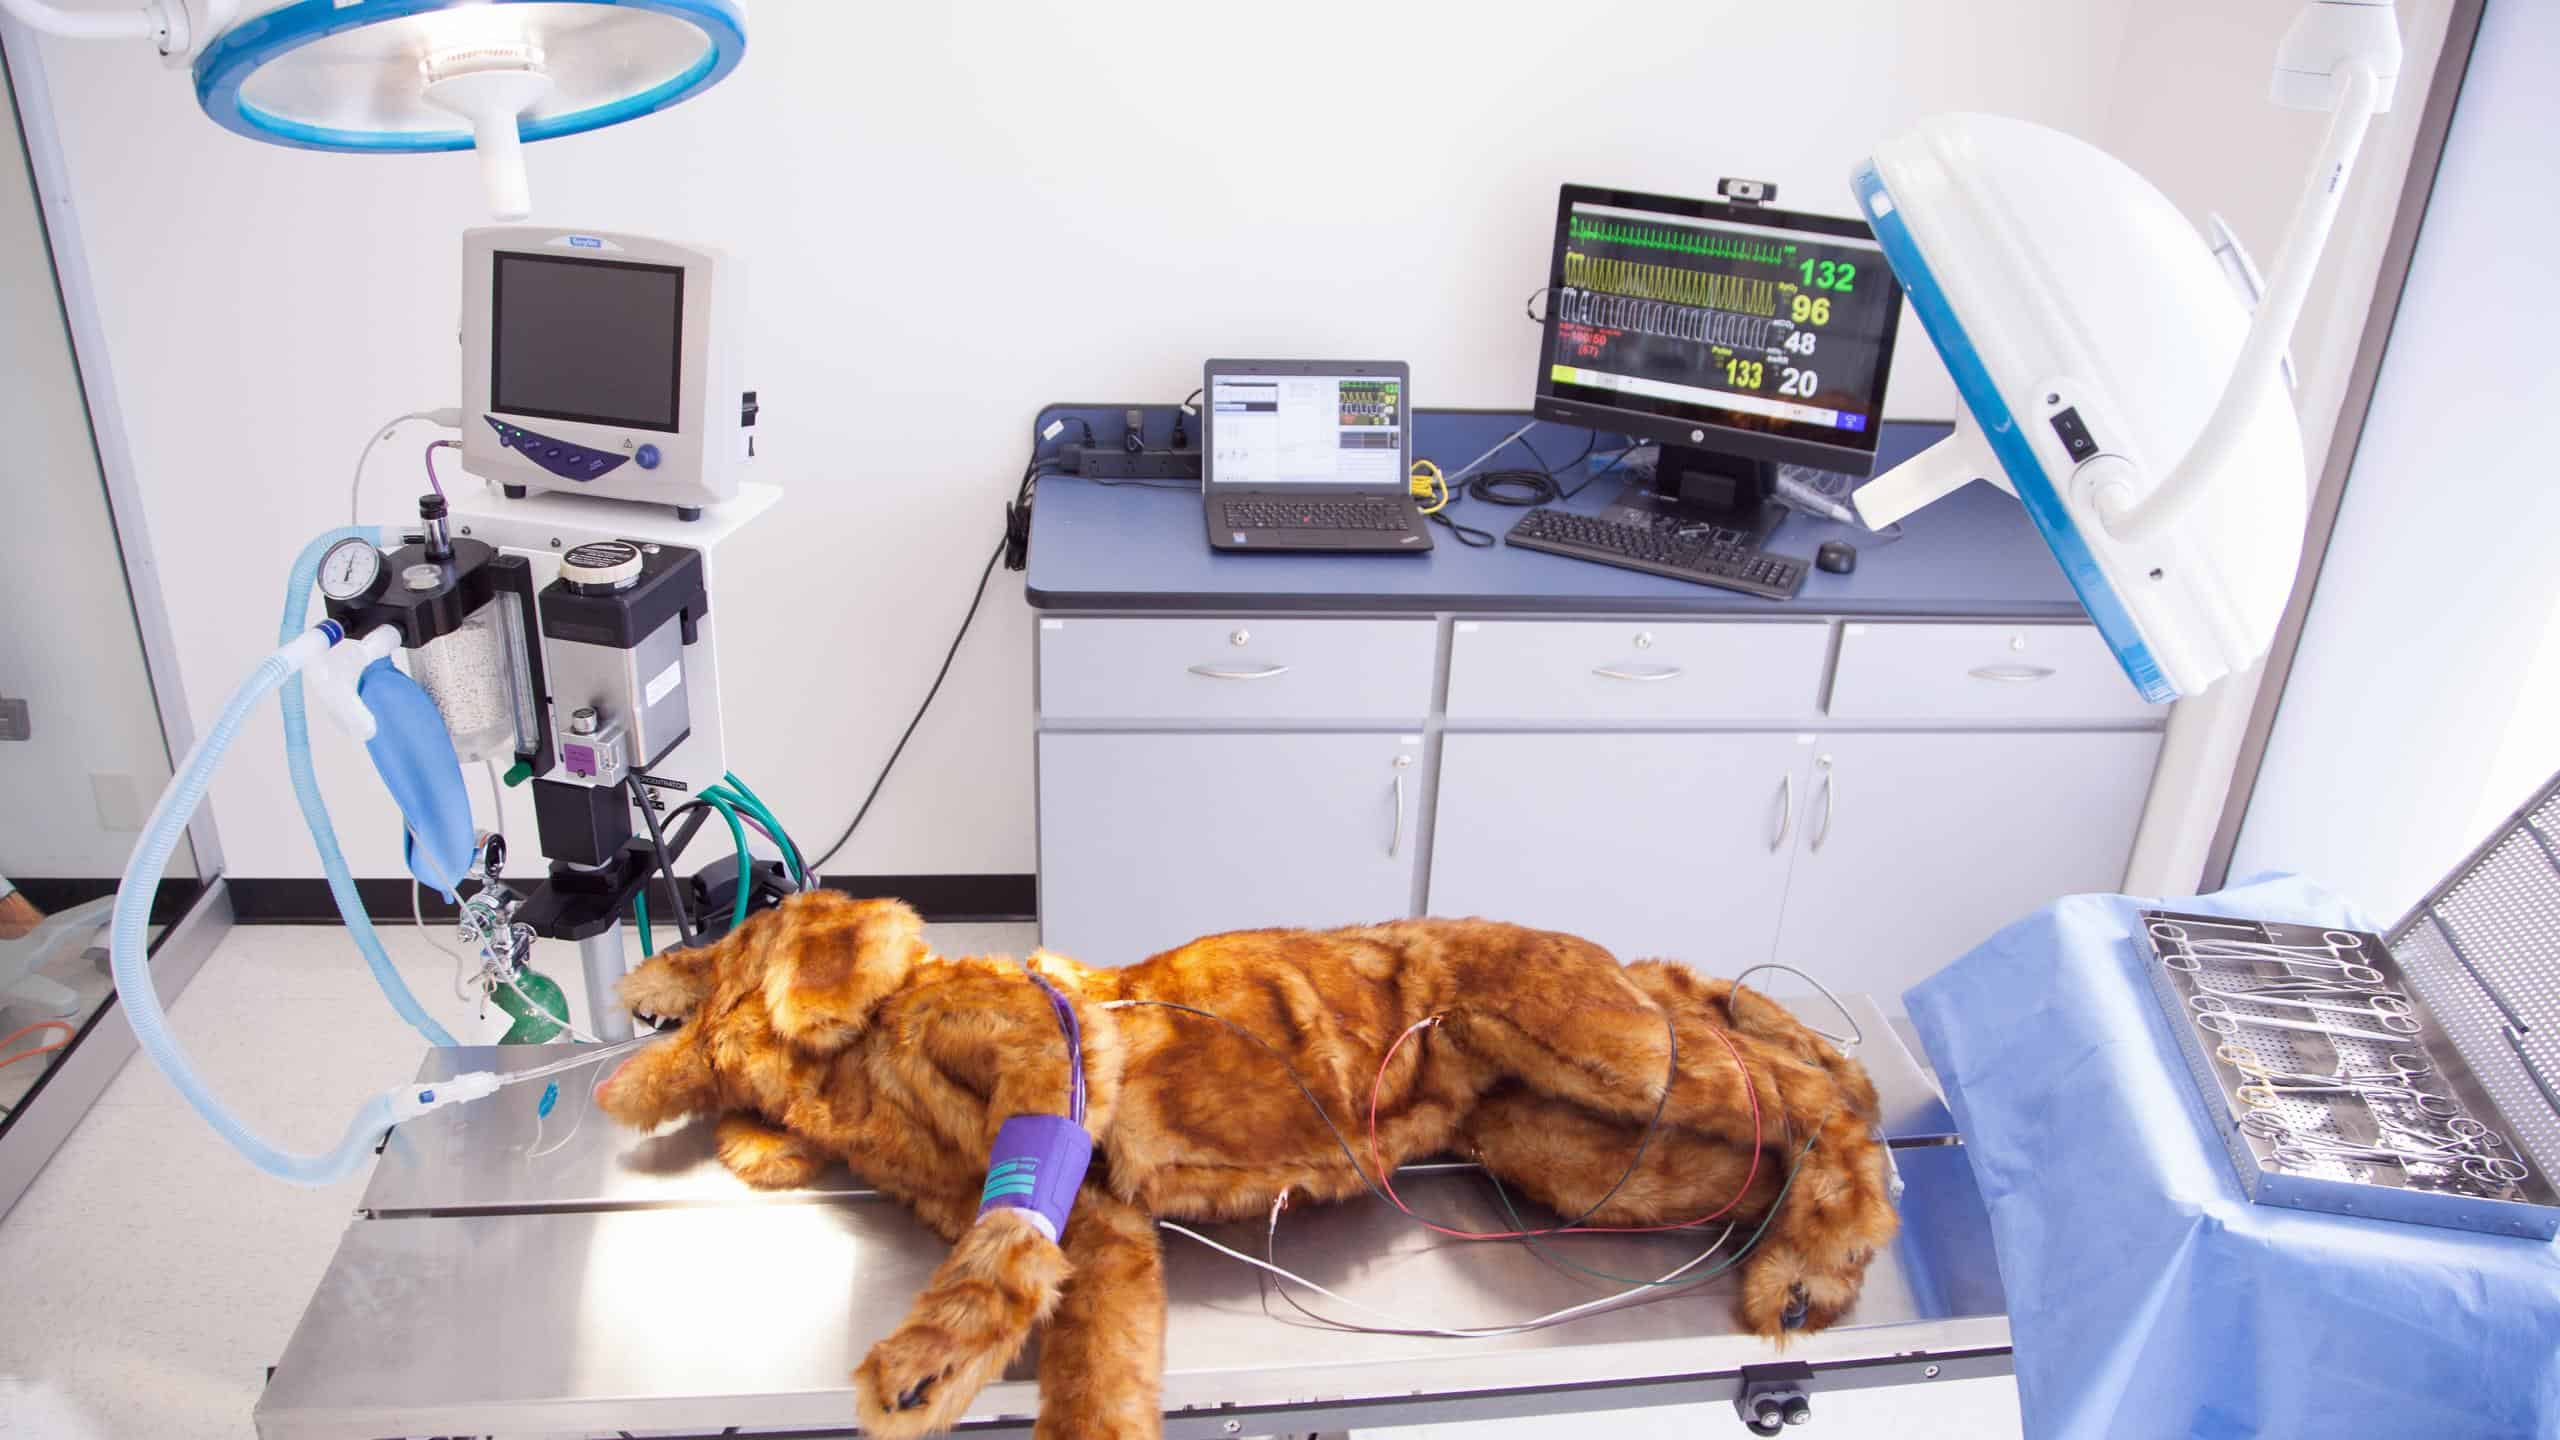 Registered veterinary technician career training rvt the worlds first high fidelity canine patient simulator for veterinary technician training gives students a hands on tool to practice cpr and monitoring xflitez Image collections